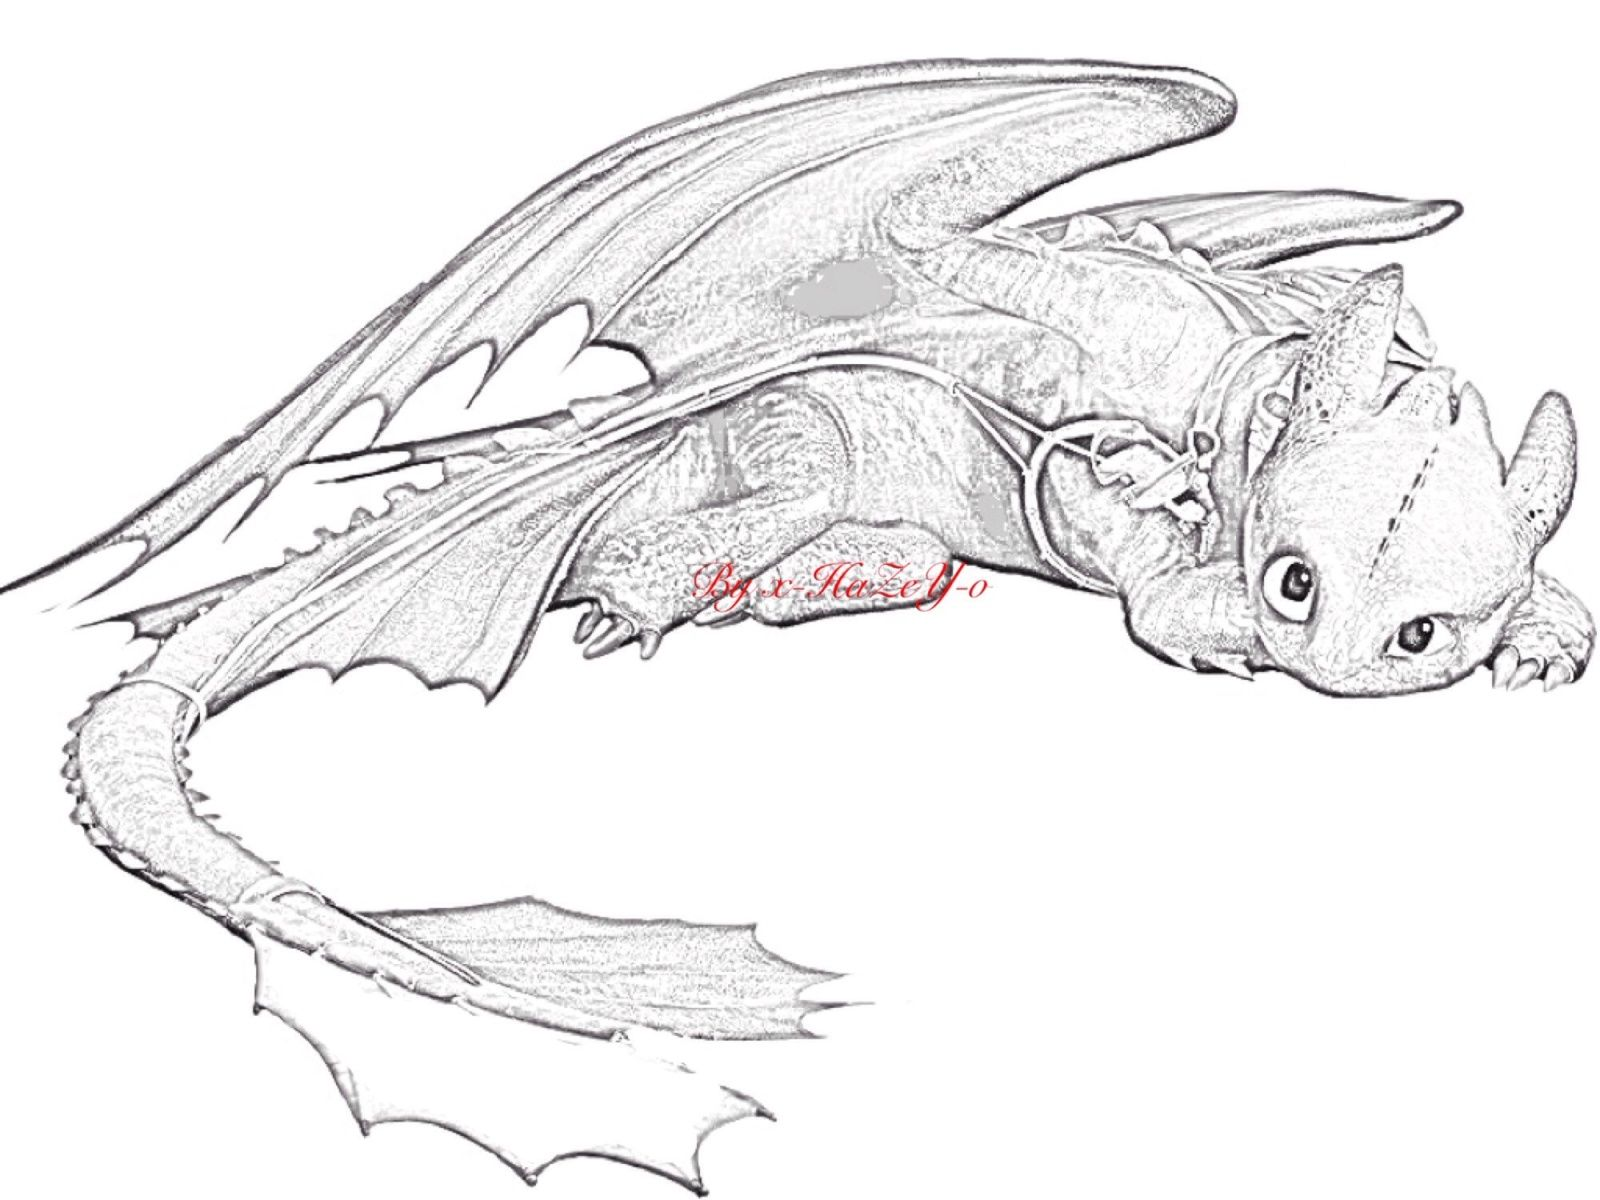 Toothless drawing google search how to train you dragon toothless drawing google search ccuart Image collections